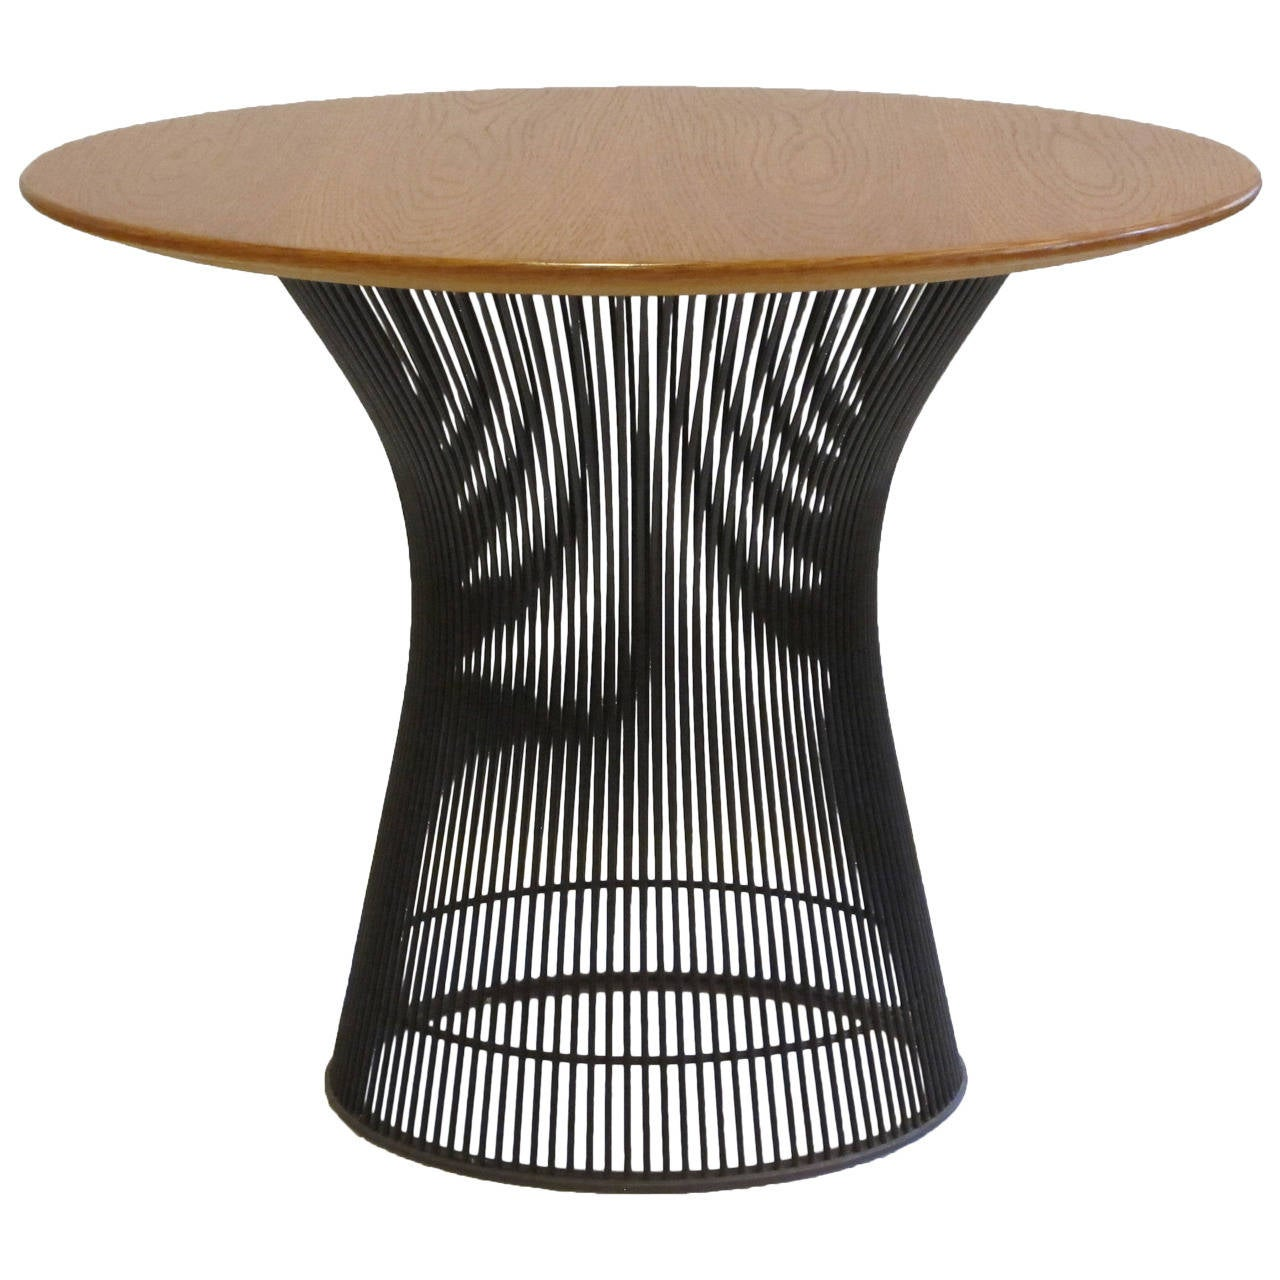 Oak and bronze side table by warren platner for knoll at for Table warren platner